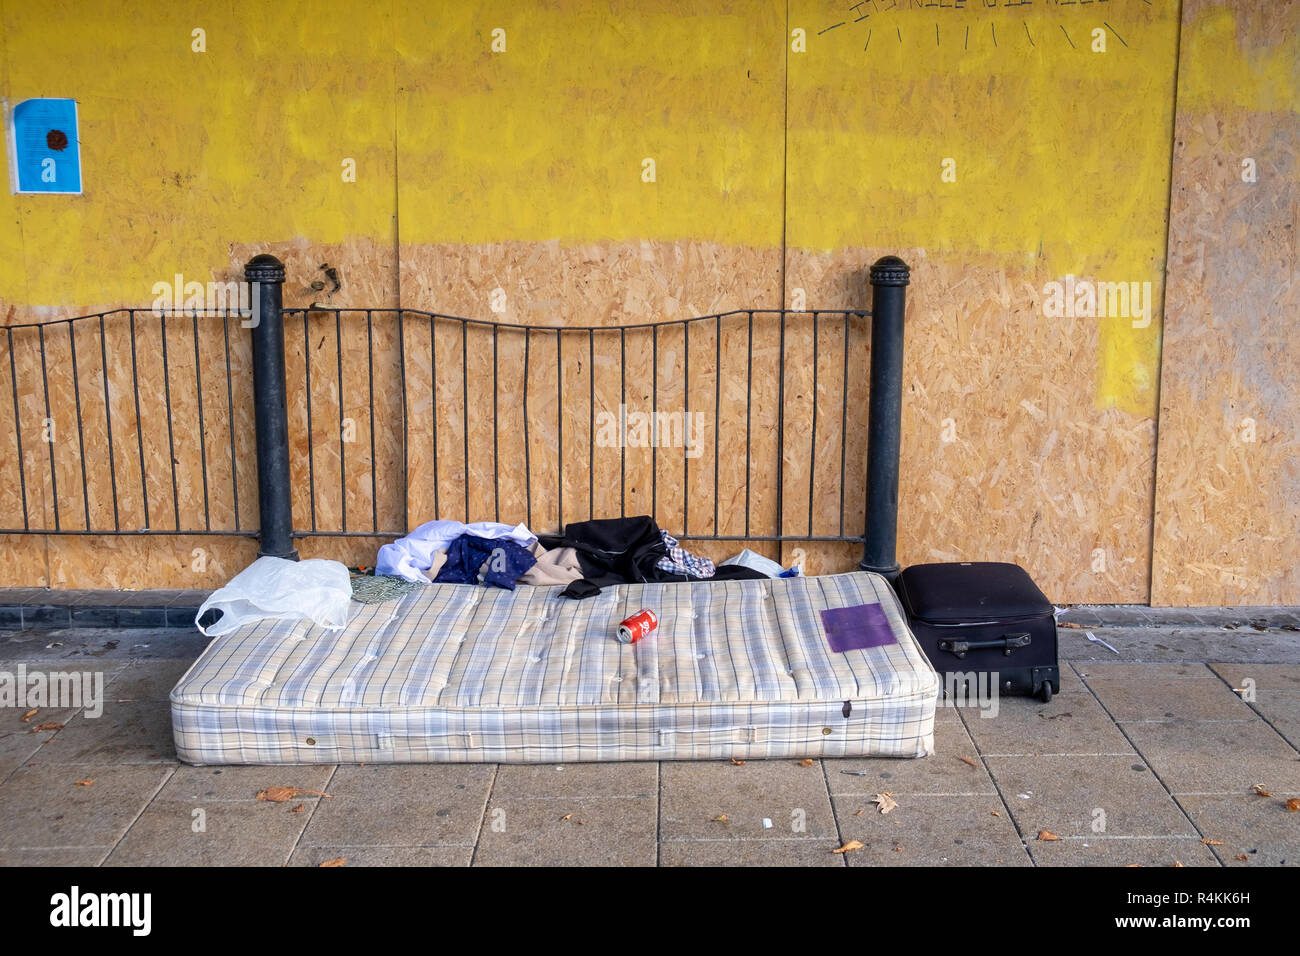 Homeless person's mattress, clothes and case - Stock Image